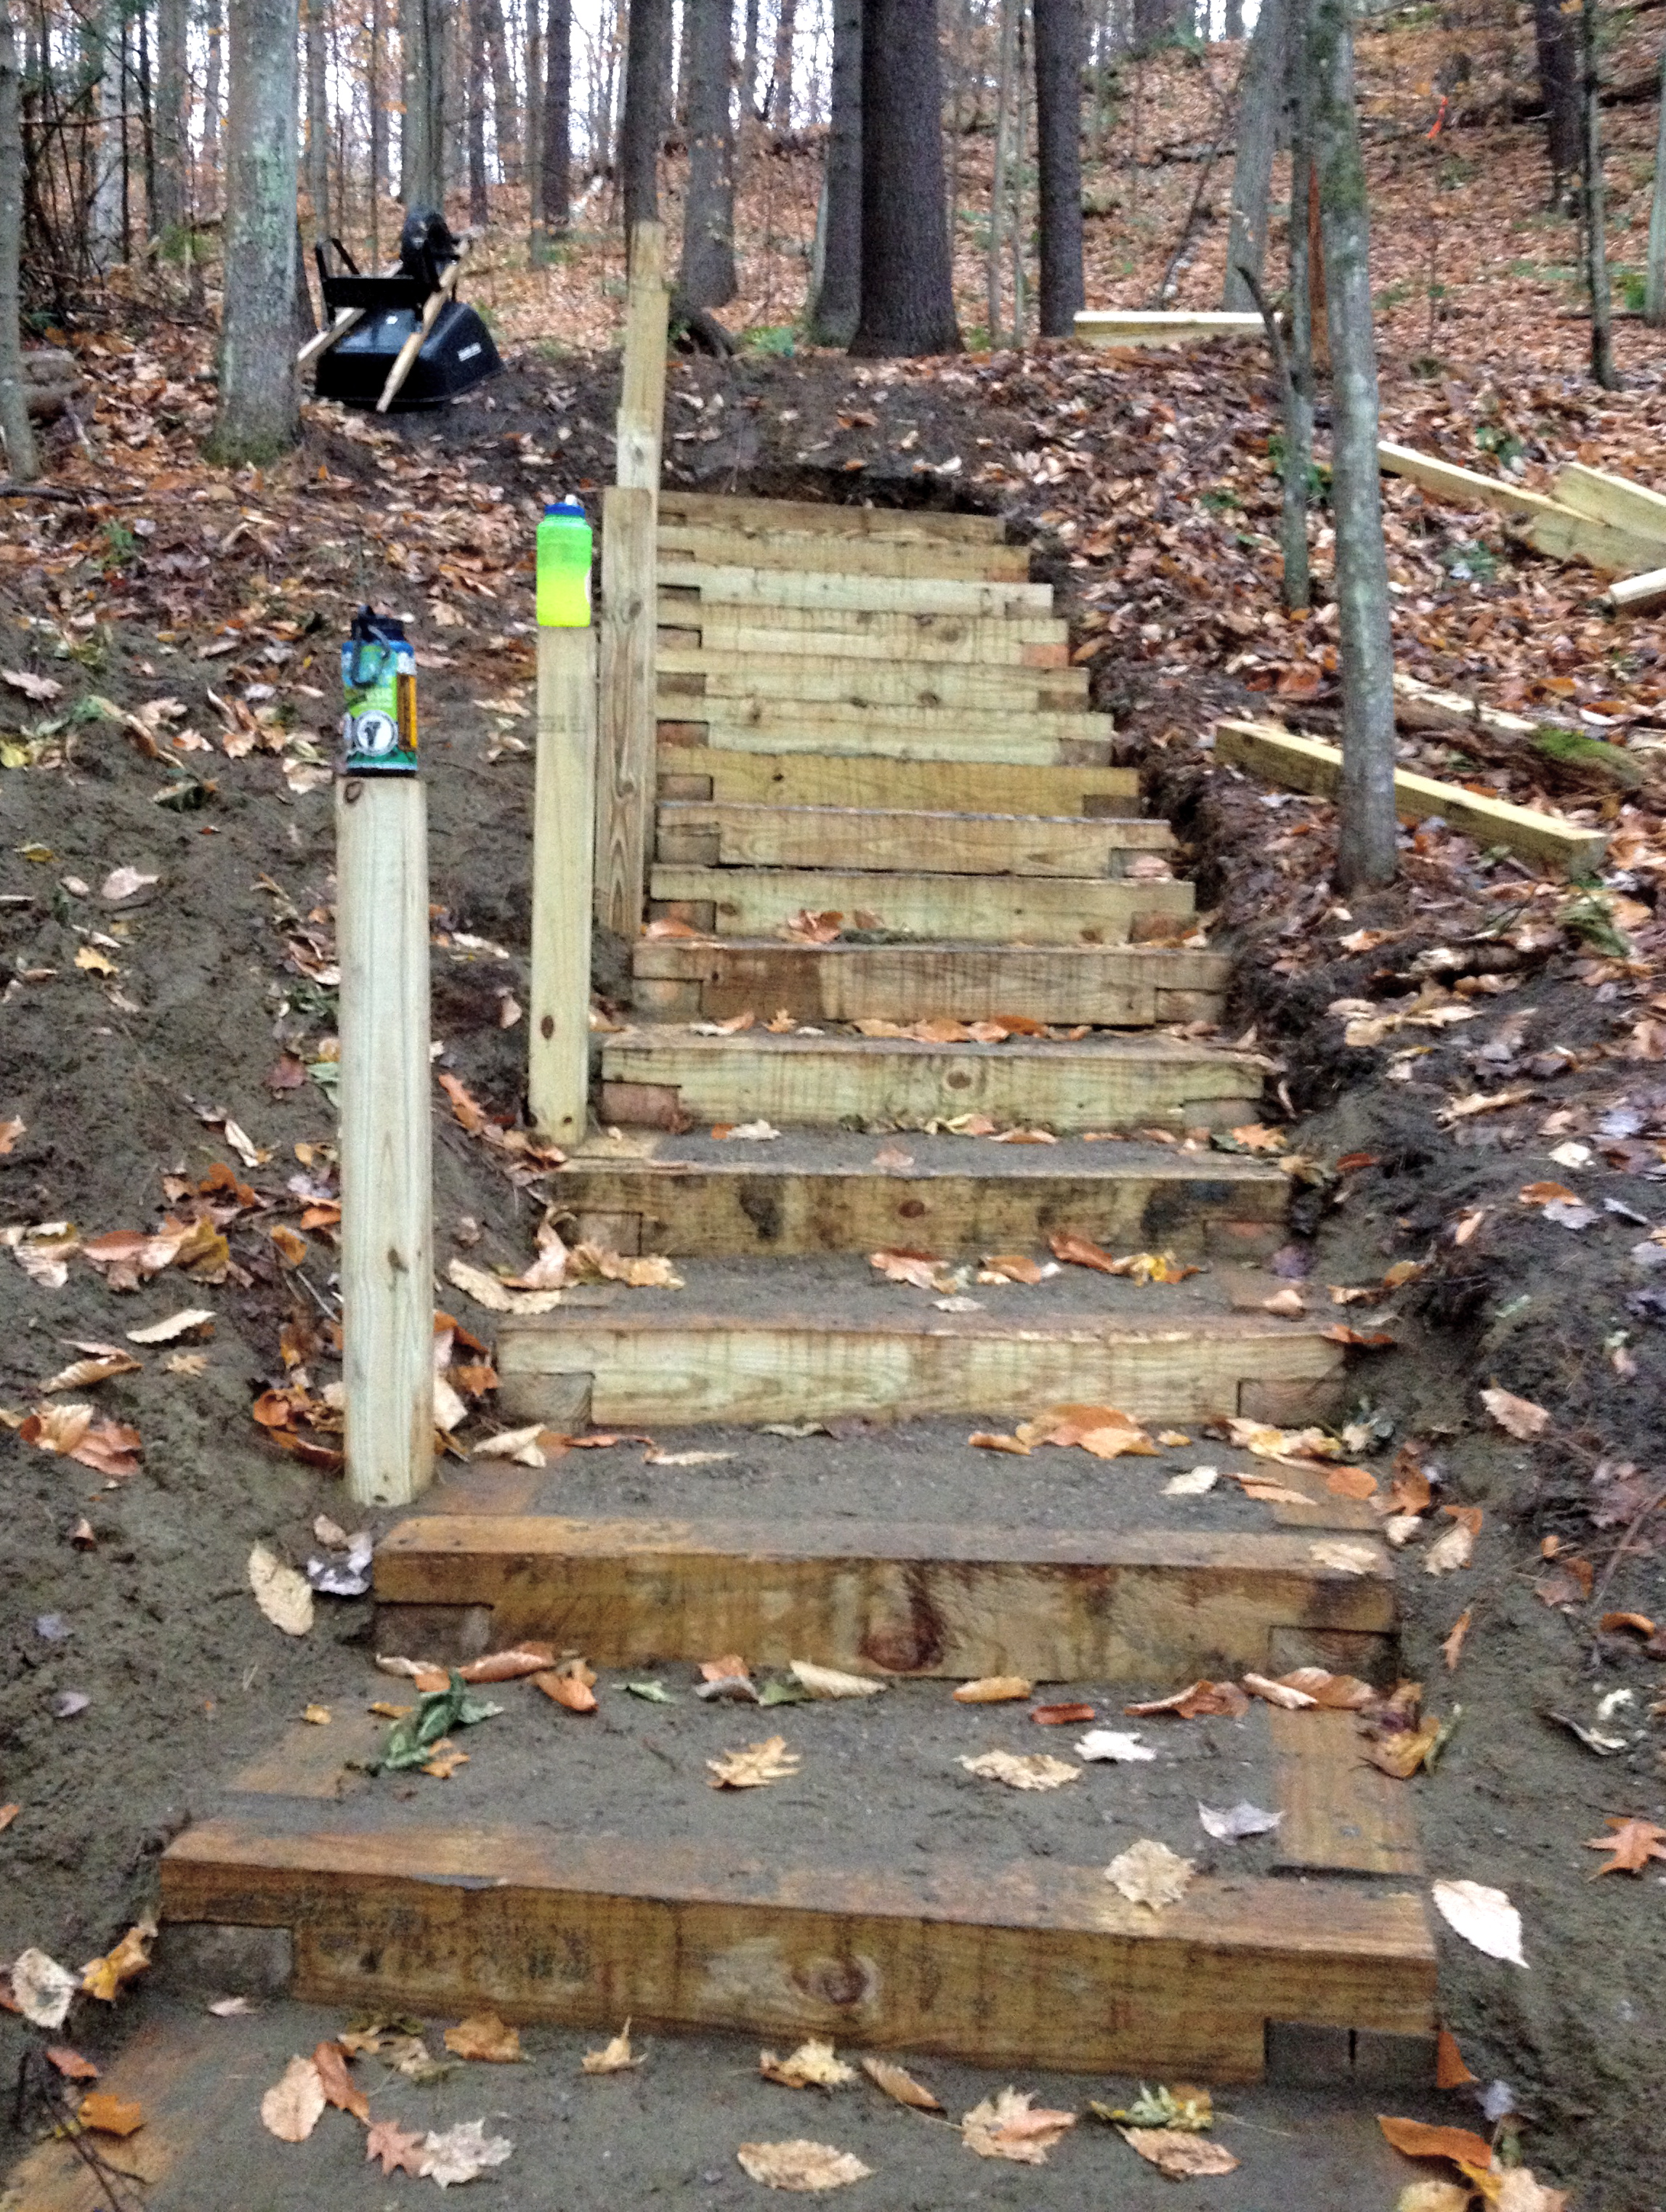 Over 80 crib steps at Niquette Bay State Park in Vermont.